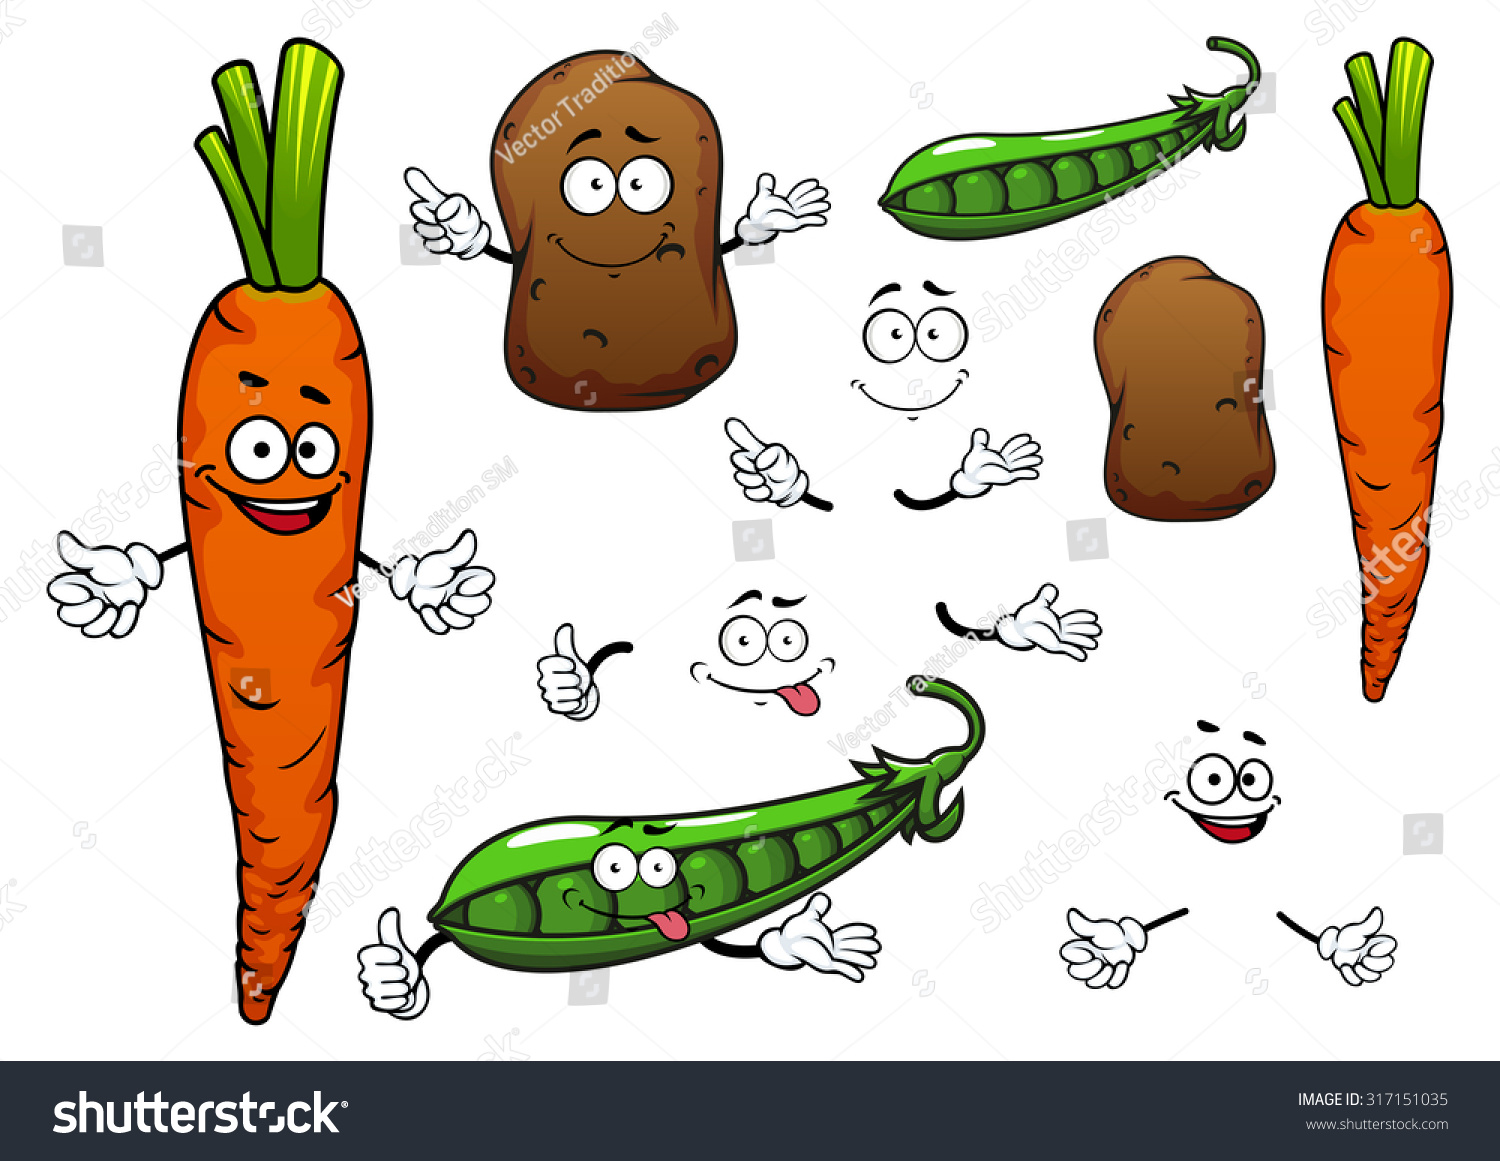 Cartoon peas and carrots